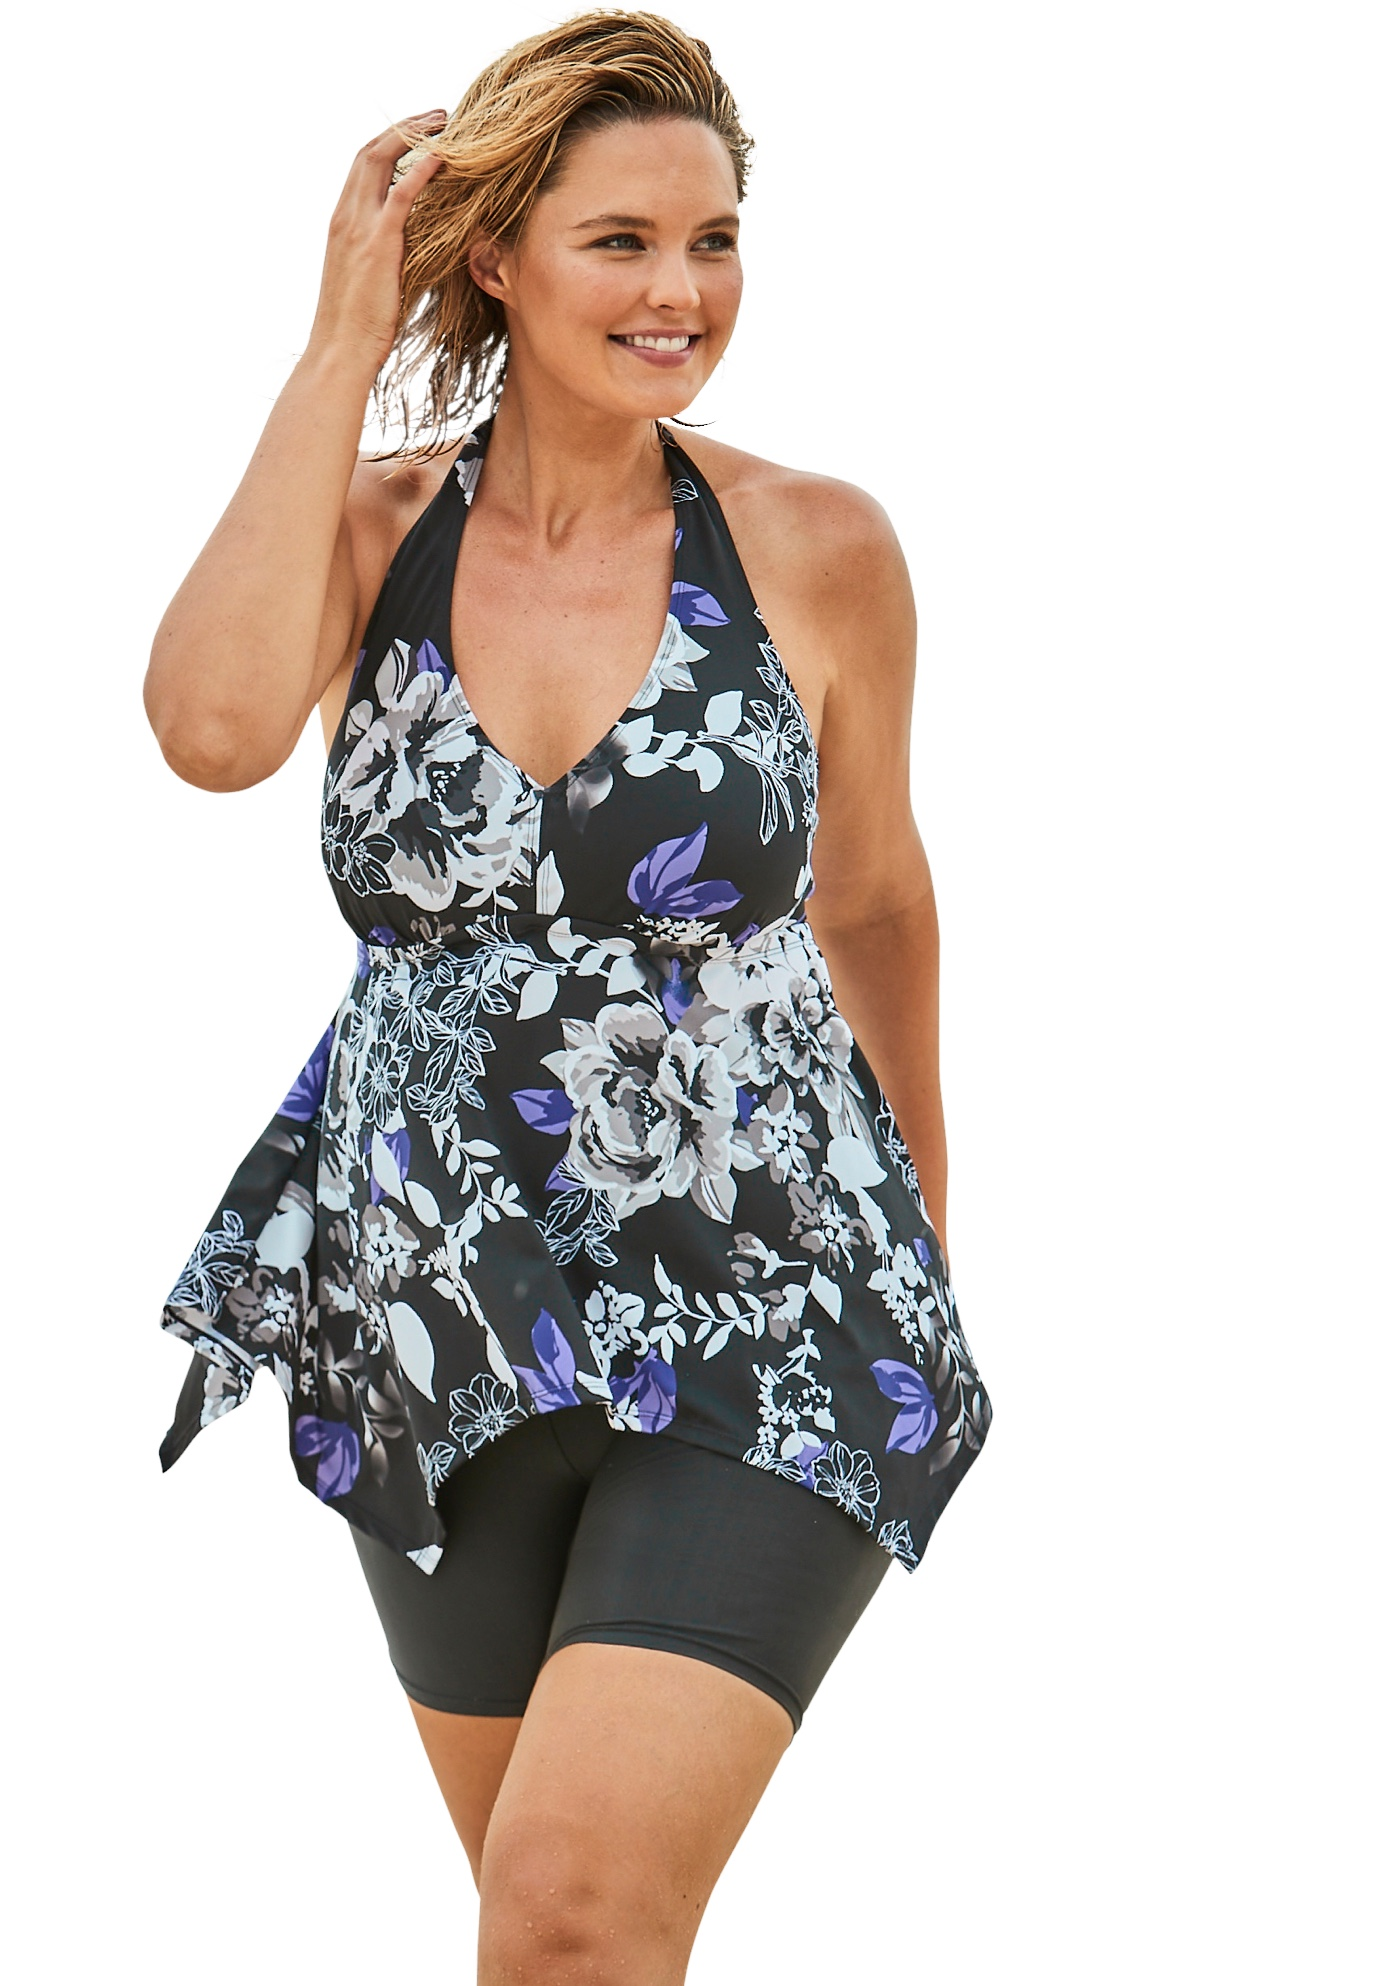 Plus Size Women's Flared Halter Tankini Top by Swim 365 in Blue Painterly Blossom